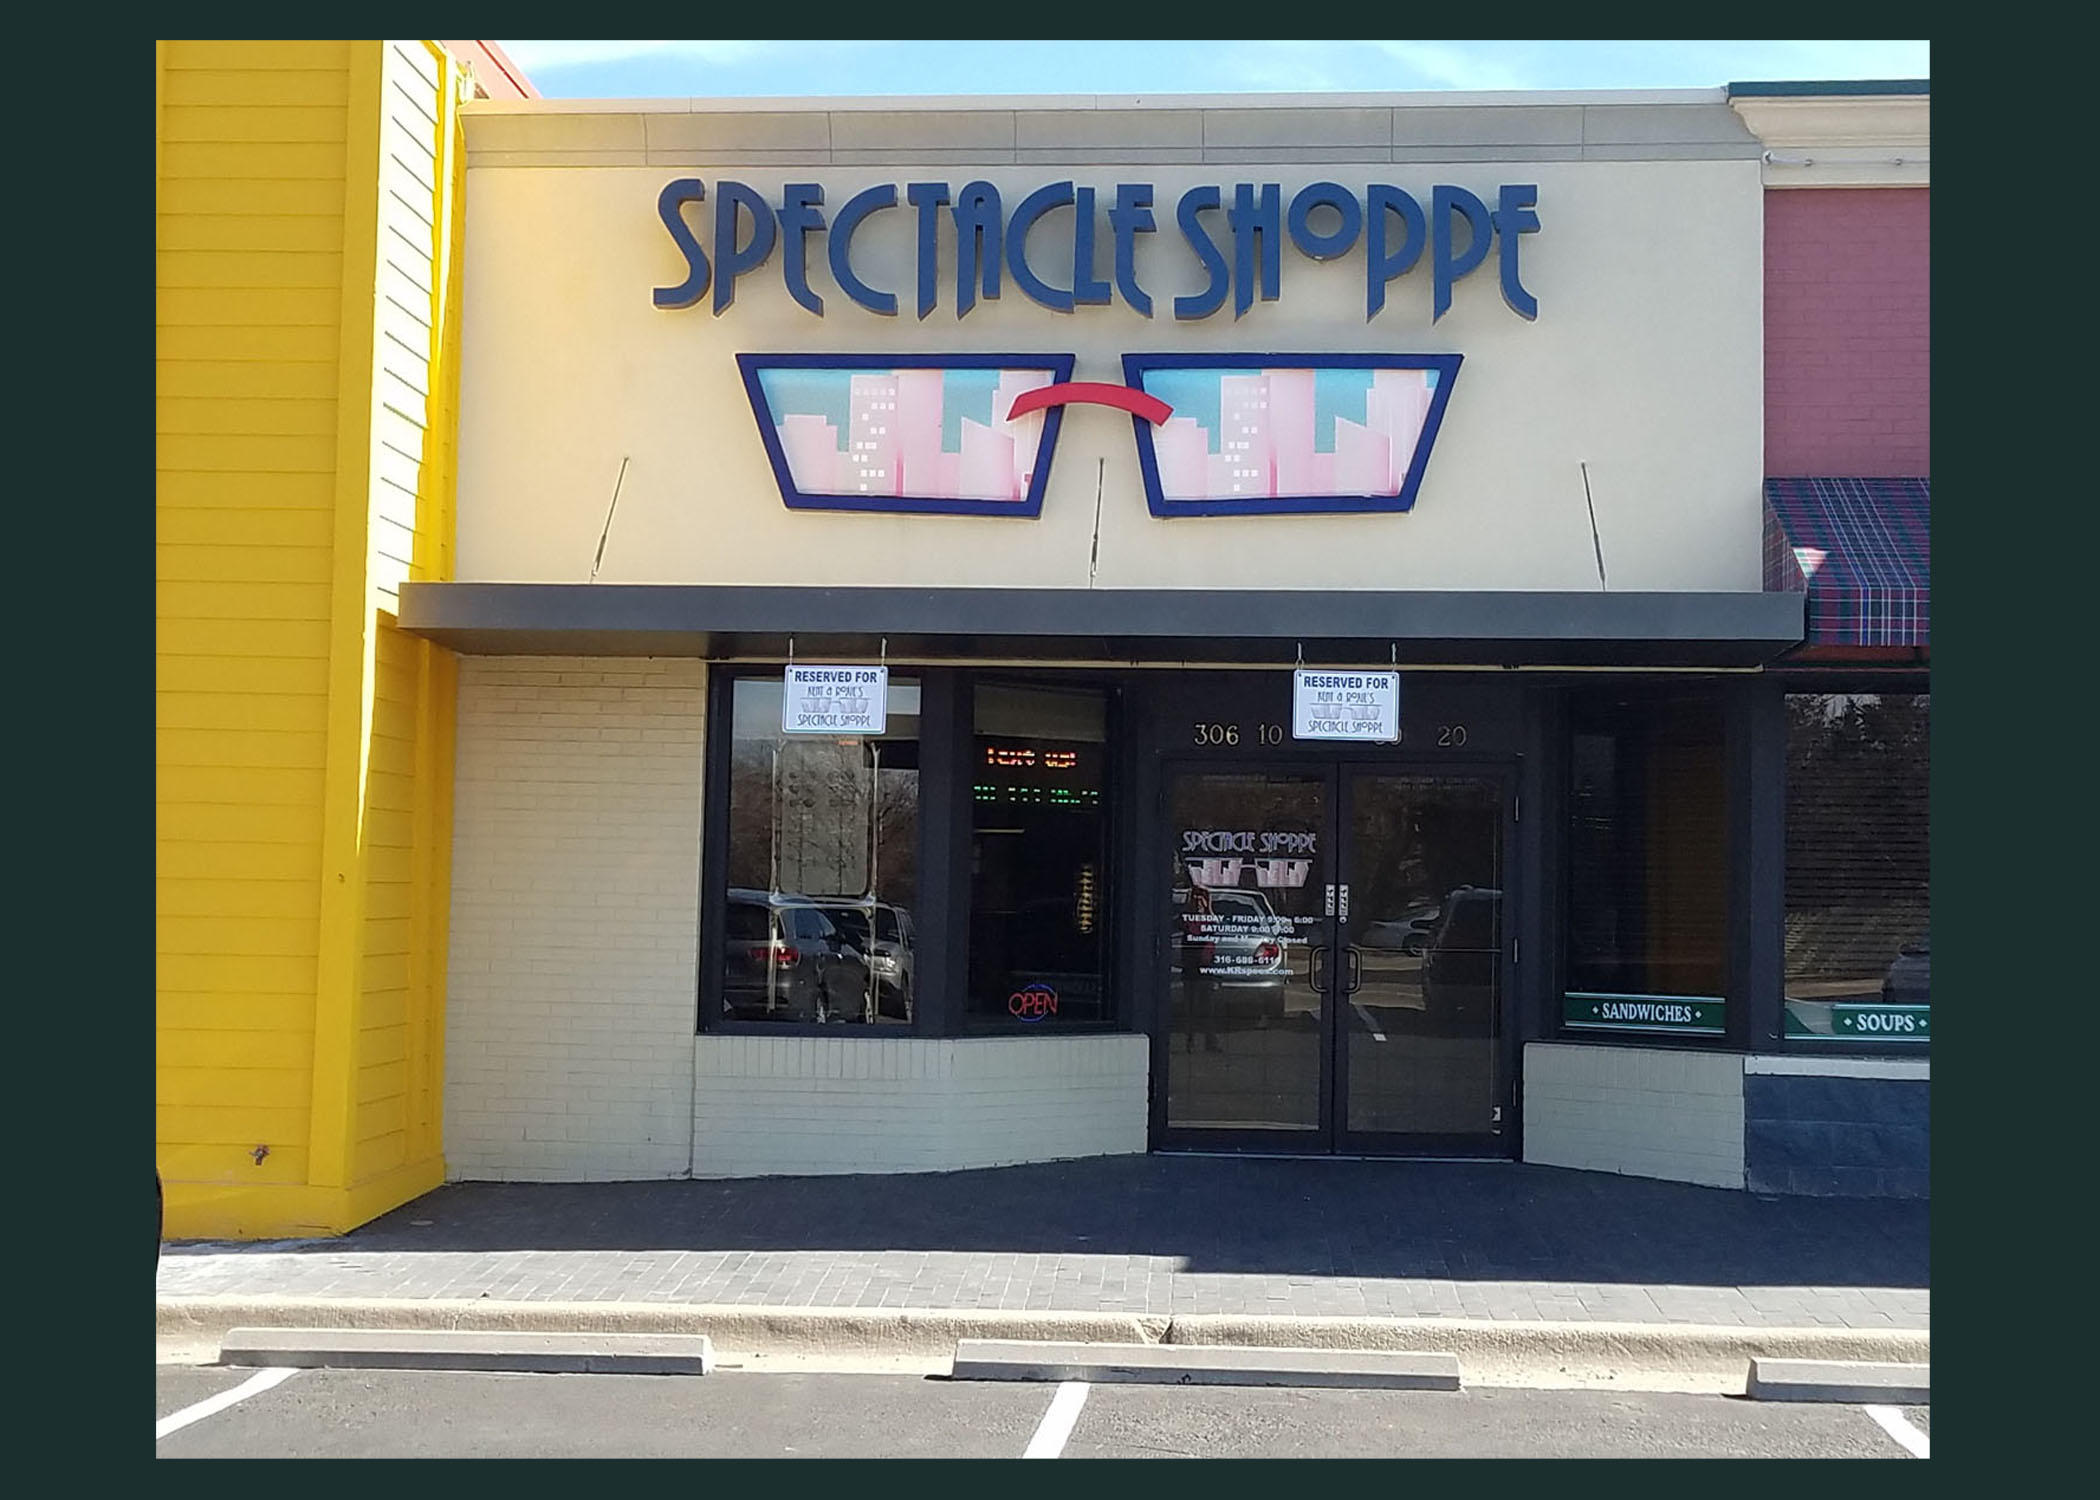 The Spectacle Shoppe image 1